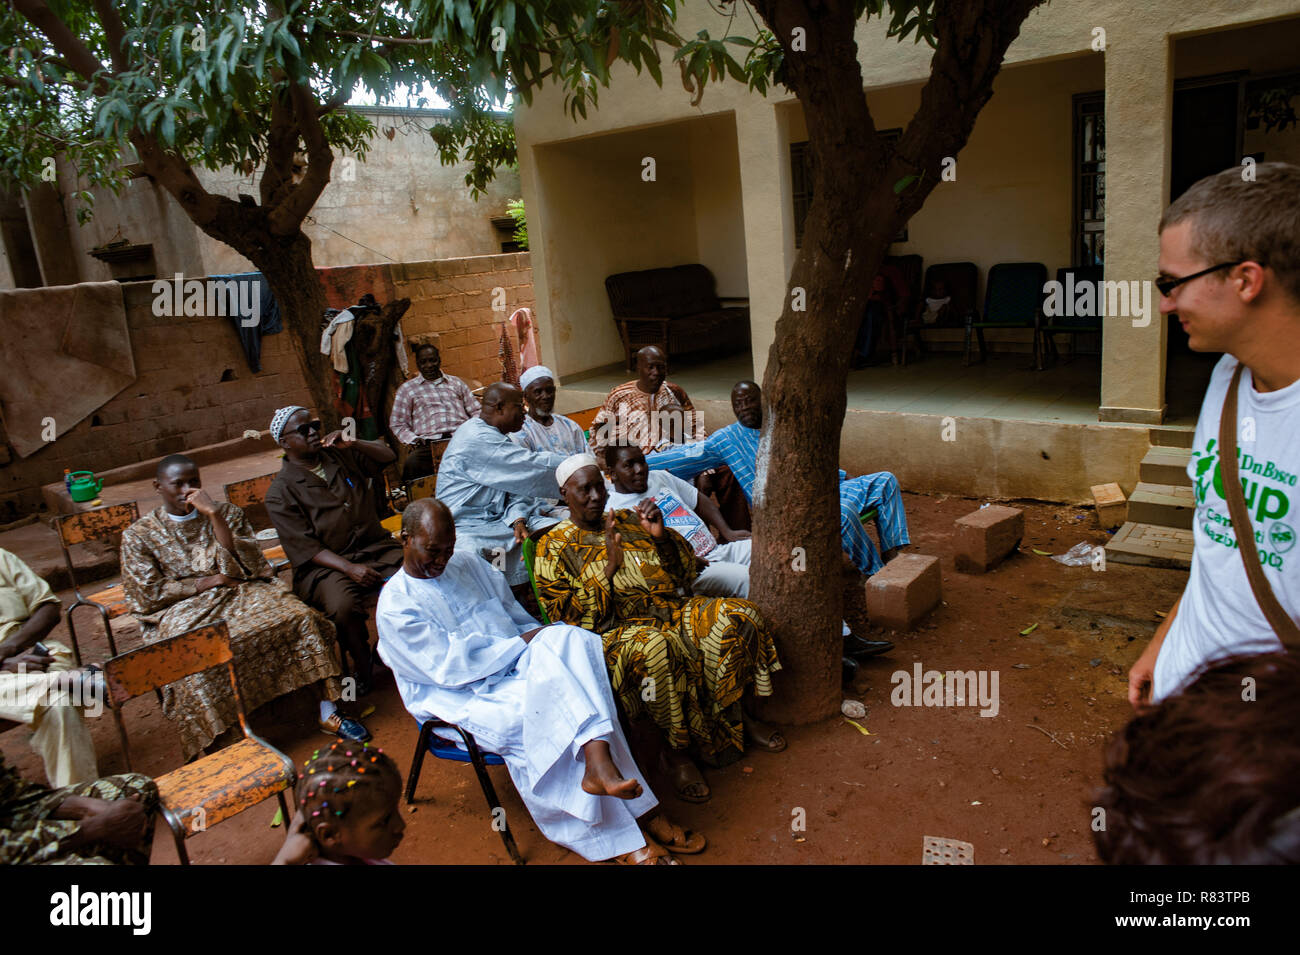 Mali Africa White Caucasian Volunteers And Black African People Enjoy Life In A Rural Village Near Bamako Stock Photo Alamy